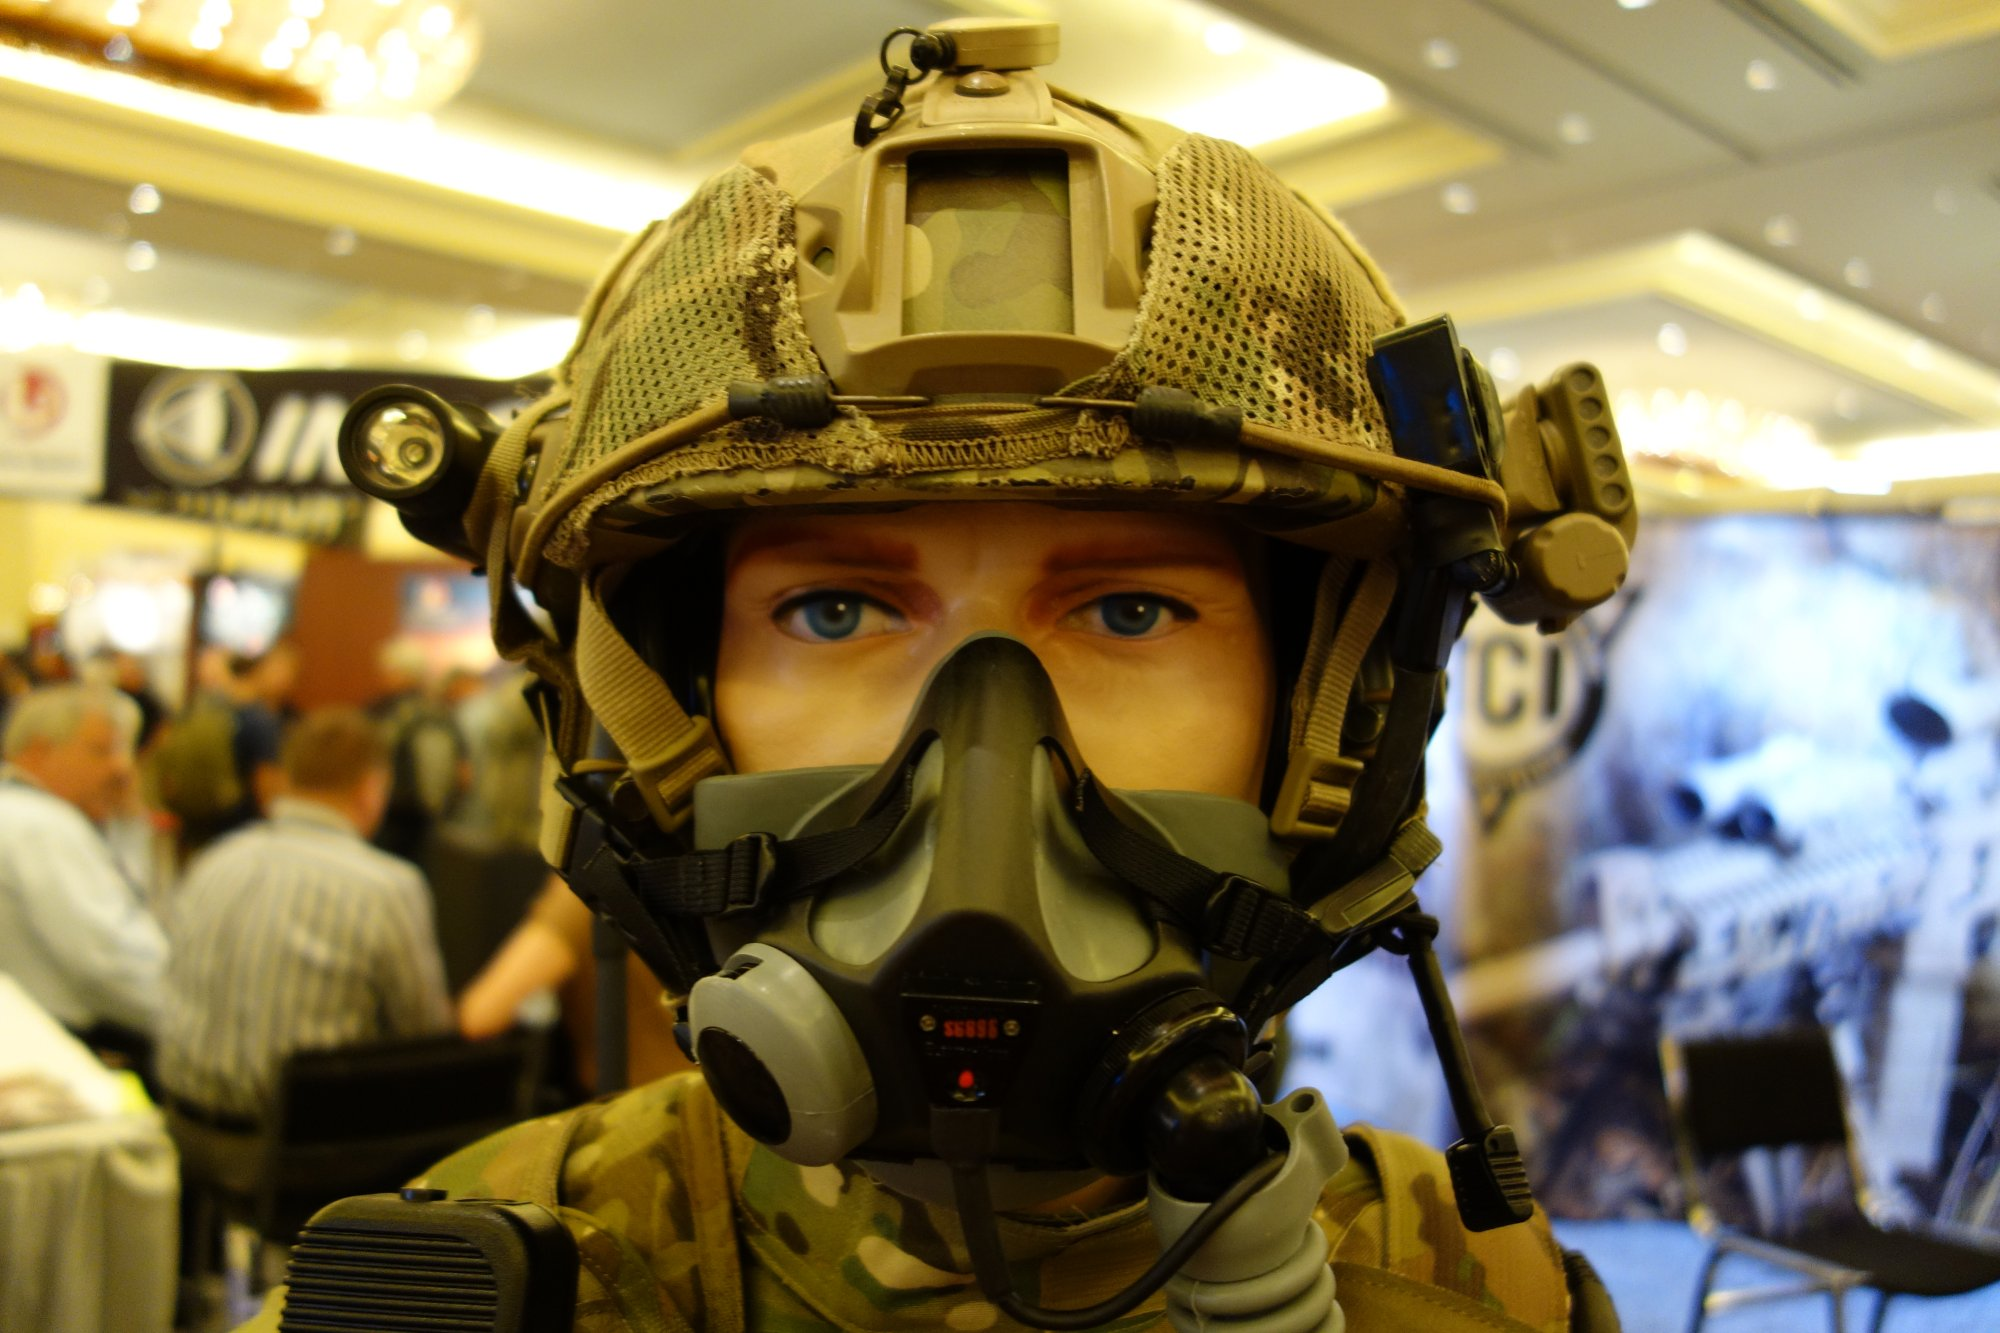 Tactical Command Industries TCI Liberator III ITJCS-TACP/JTAC Secure Dual-Comm Tactical Headset with Integrated Digital Hearing Protection for Military Airborne and Ground Ops (Video!)